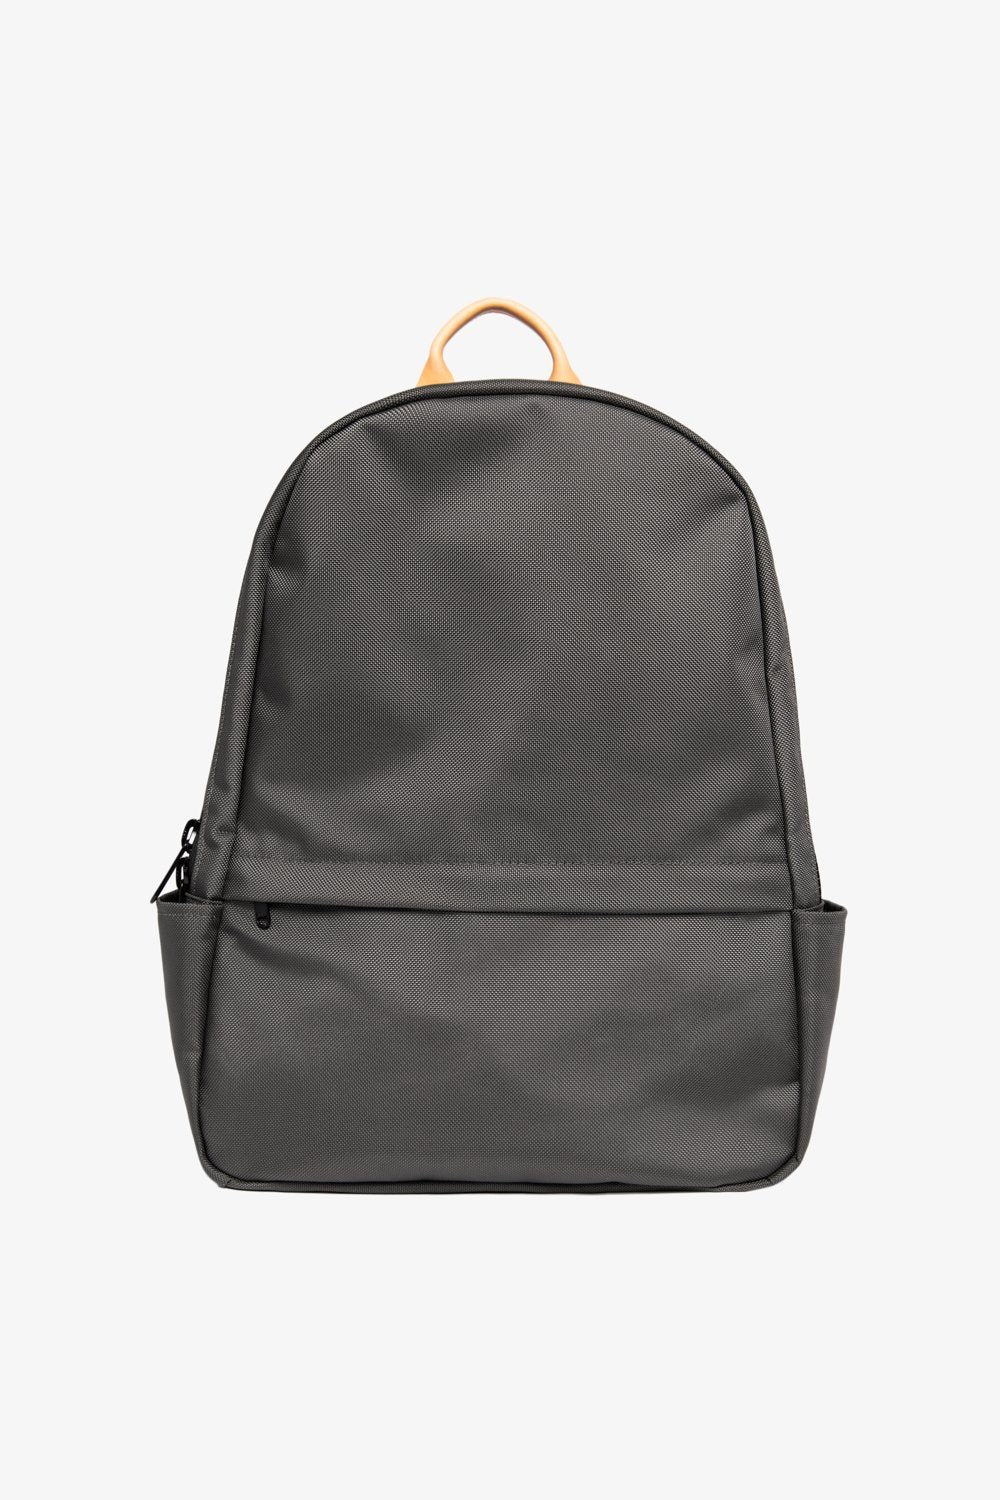 Pablo Backpack - Black Jack + Mulligan Gray